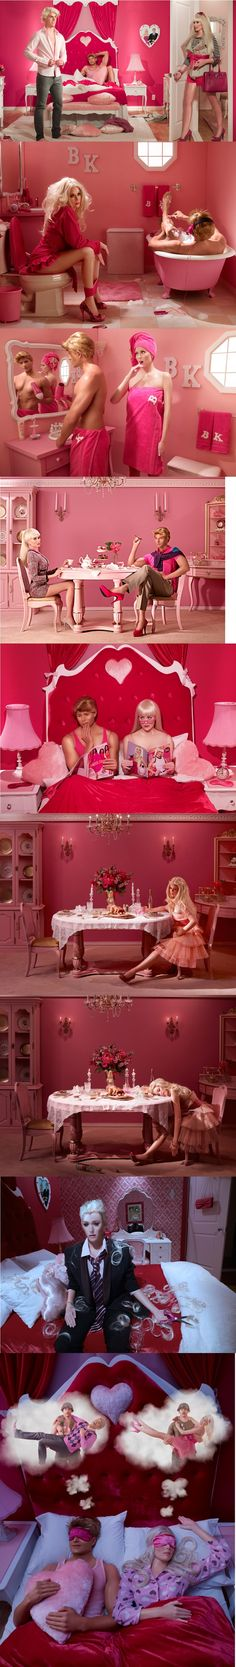 Barbie and Ken in real life... Who ever came up with this photoshoot was genius! Hilarious!